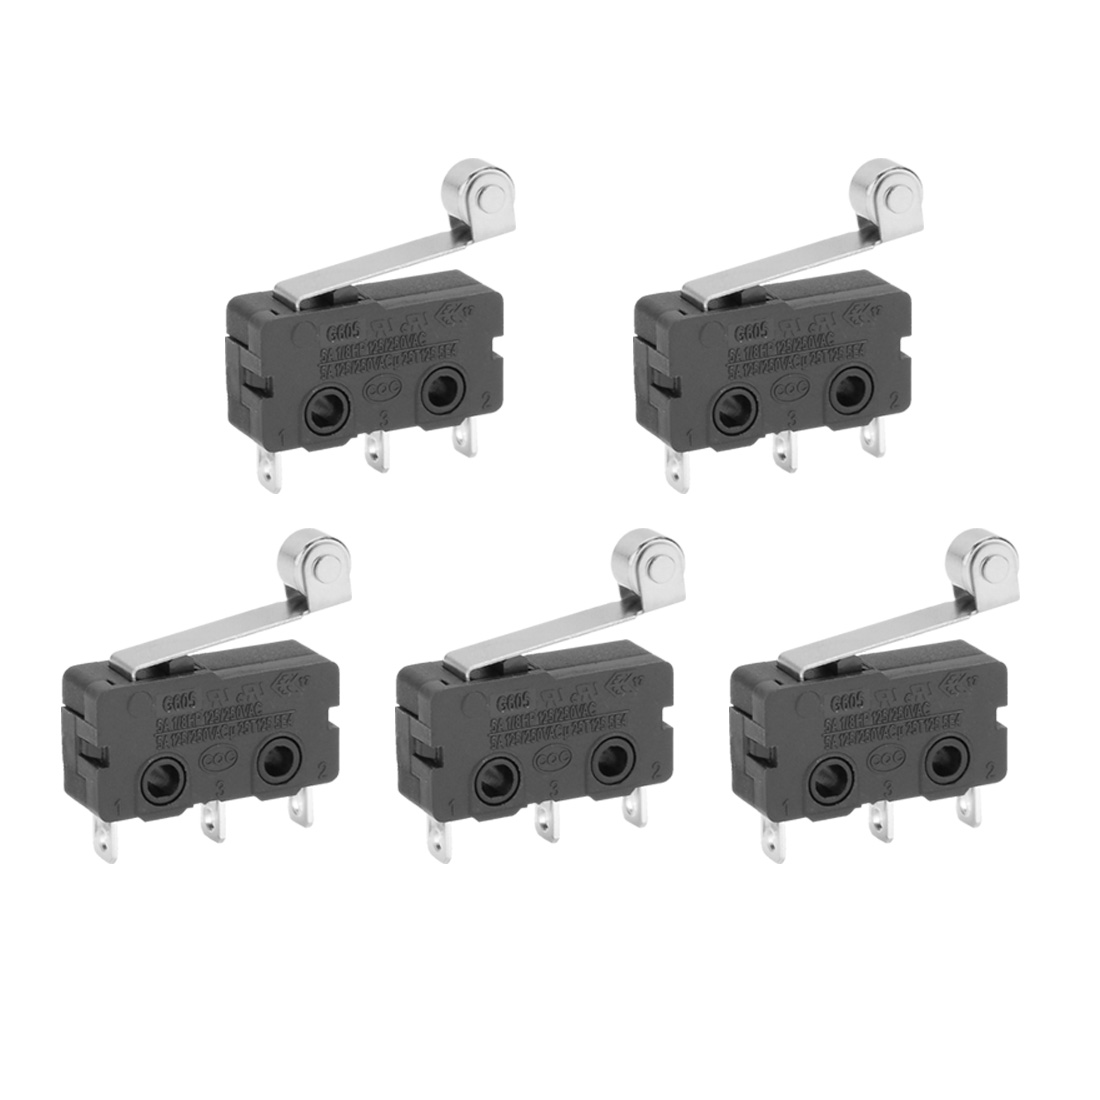 5 Pcs Micro Limit Switch Metal Roller Arm Subminiature SPDT Snap Action LOT